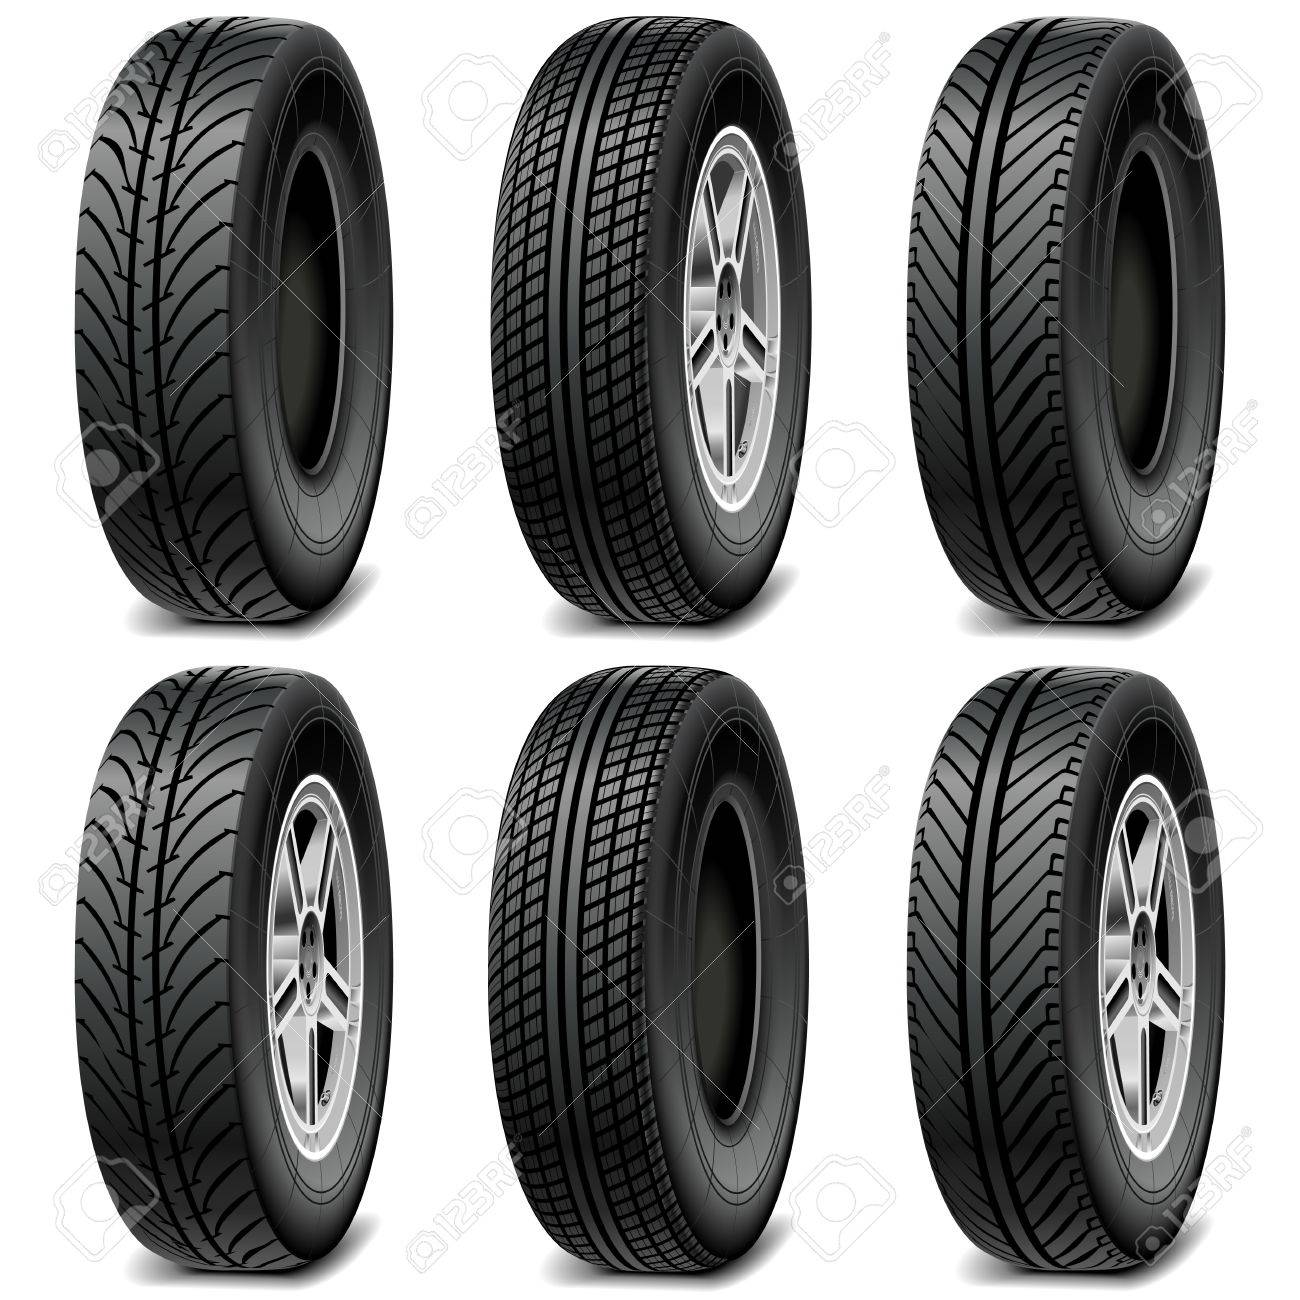 Car Tires For Nissan Altima, Car Tires Stock Vector 28918162, Car Tires For Nissan Altima